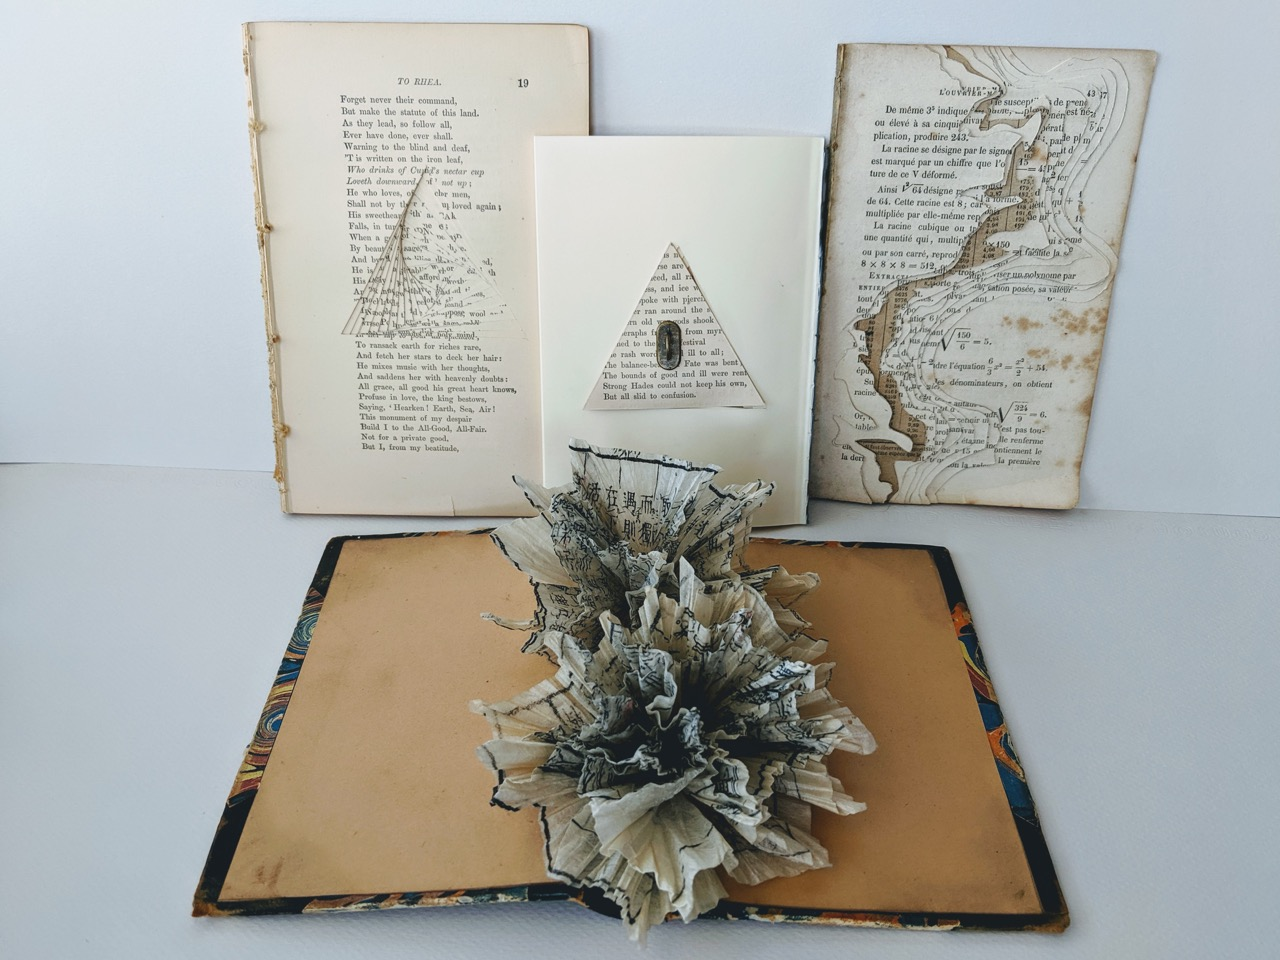 Altered books photo.jpeg